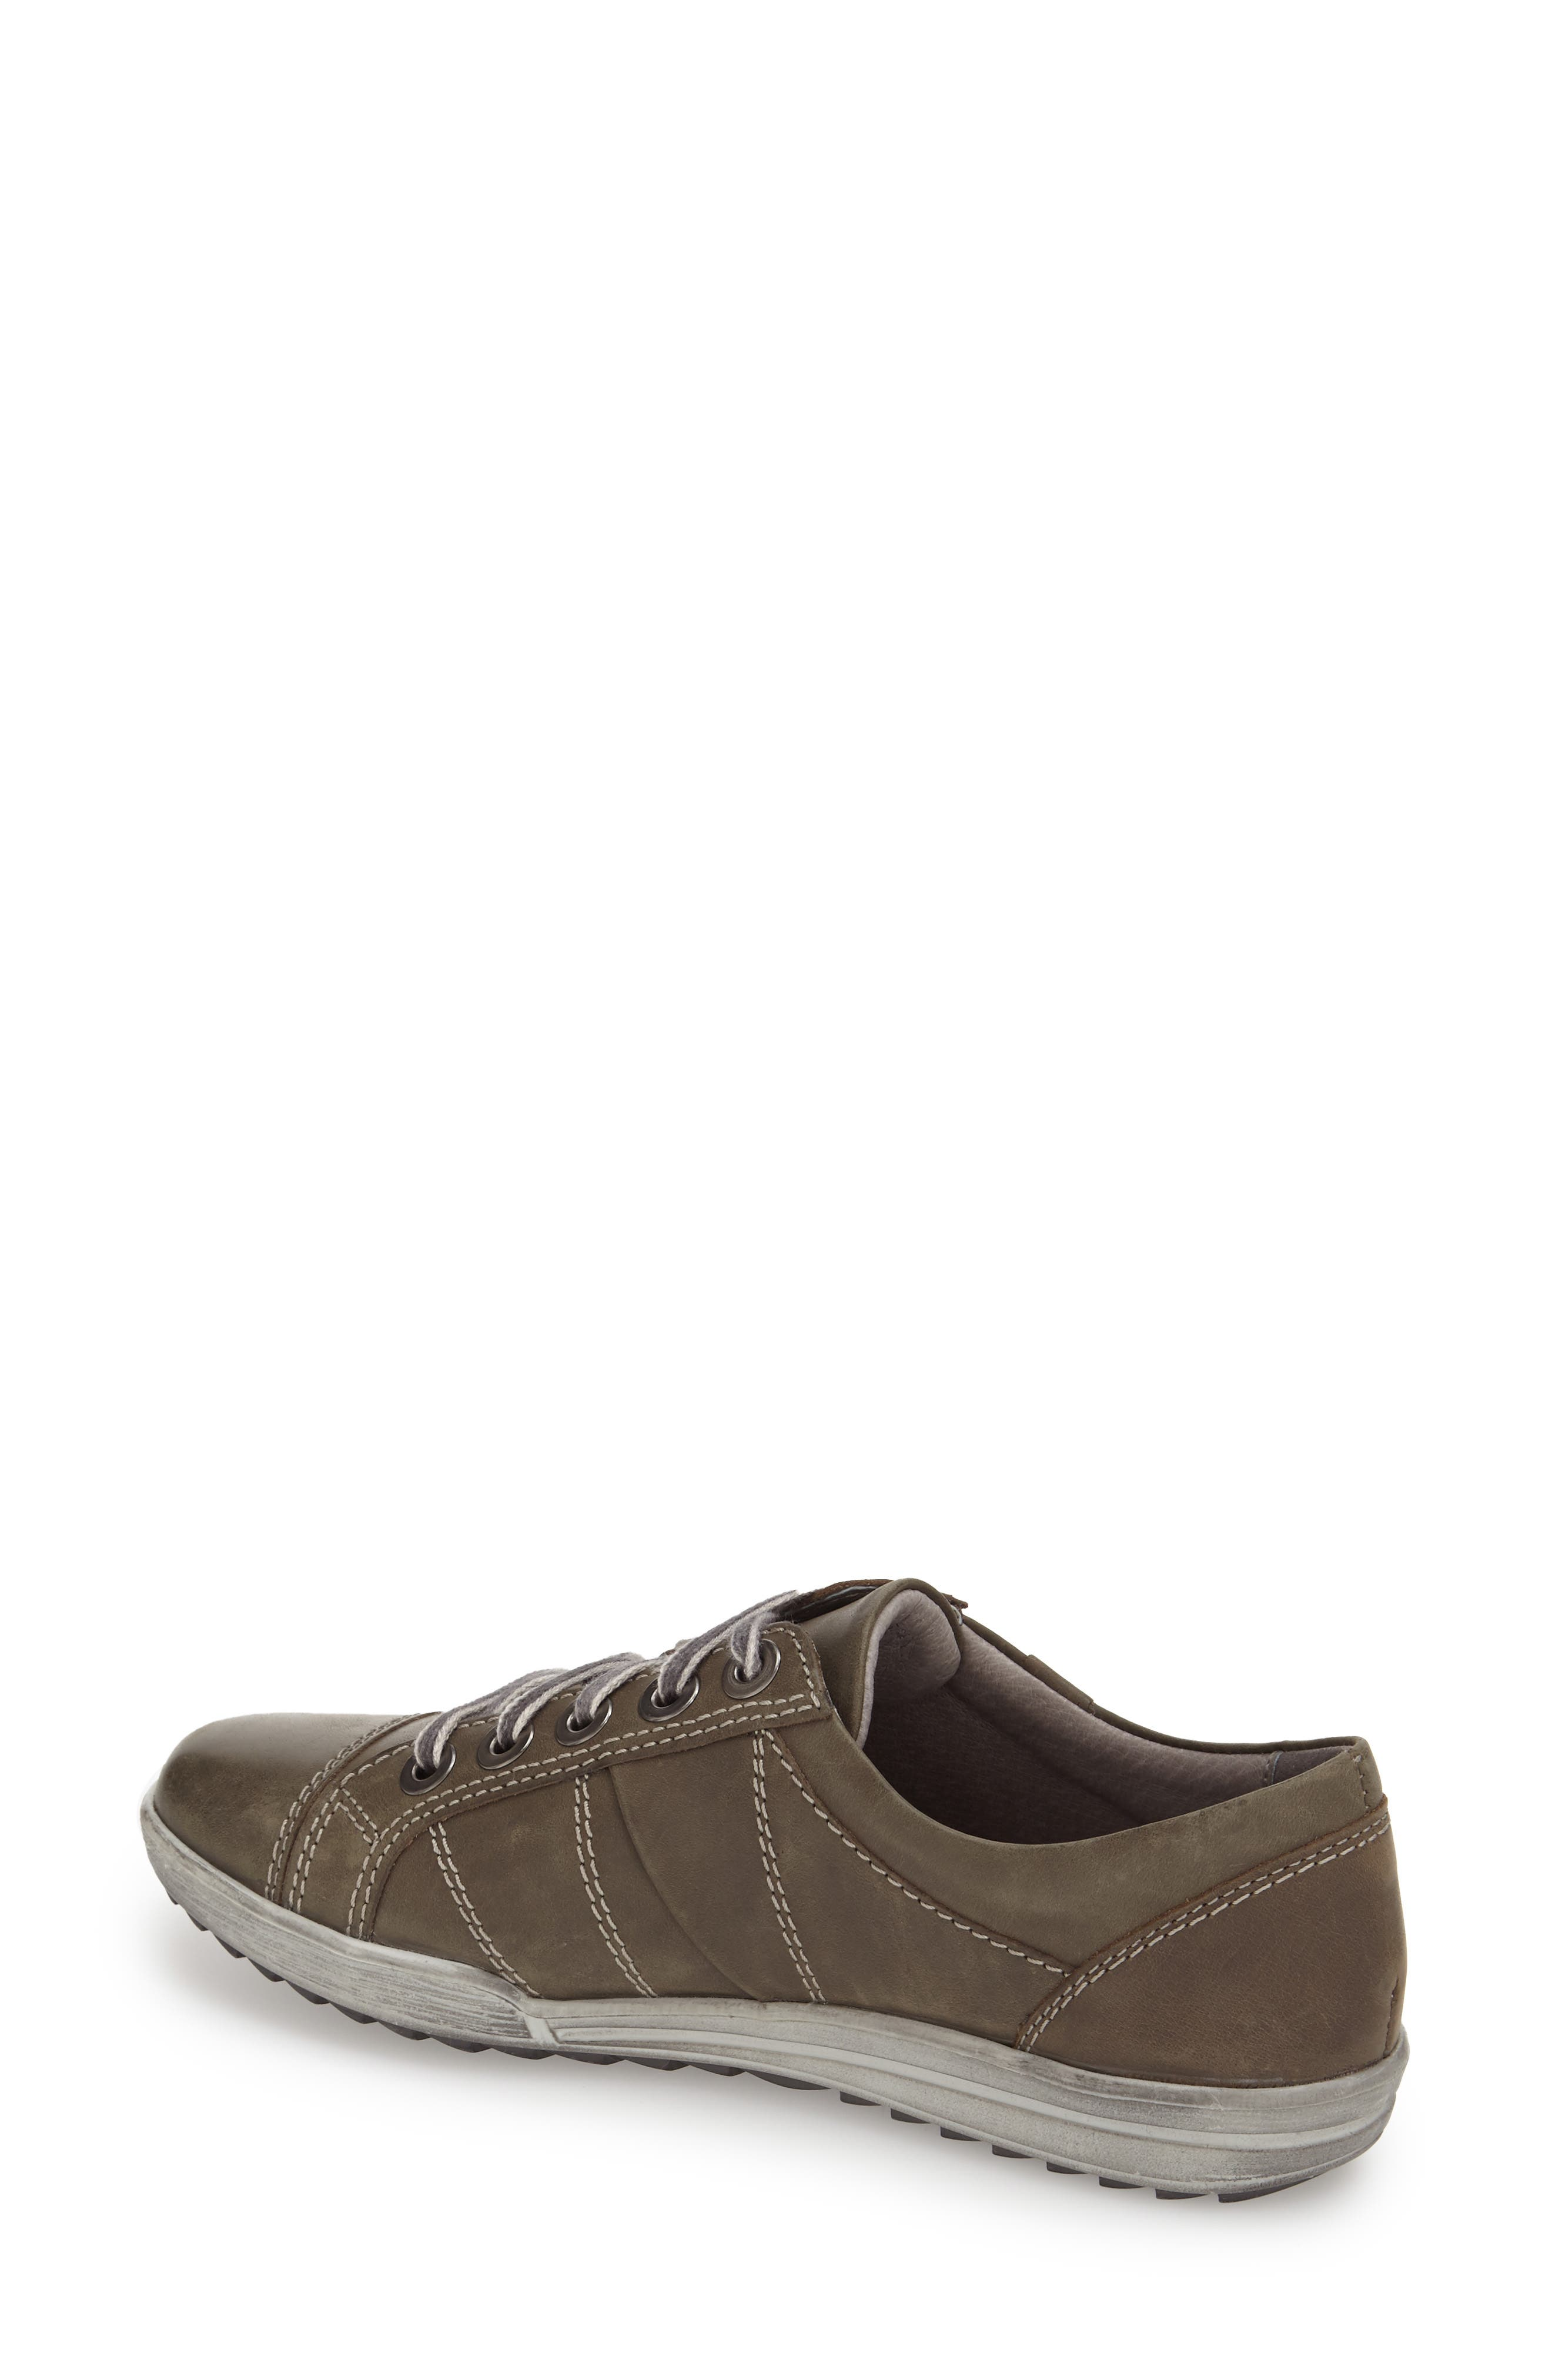 'Dany 05' Leather Sneaker,                             Alternate thumbnail 40, color,